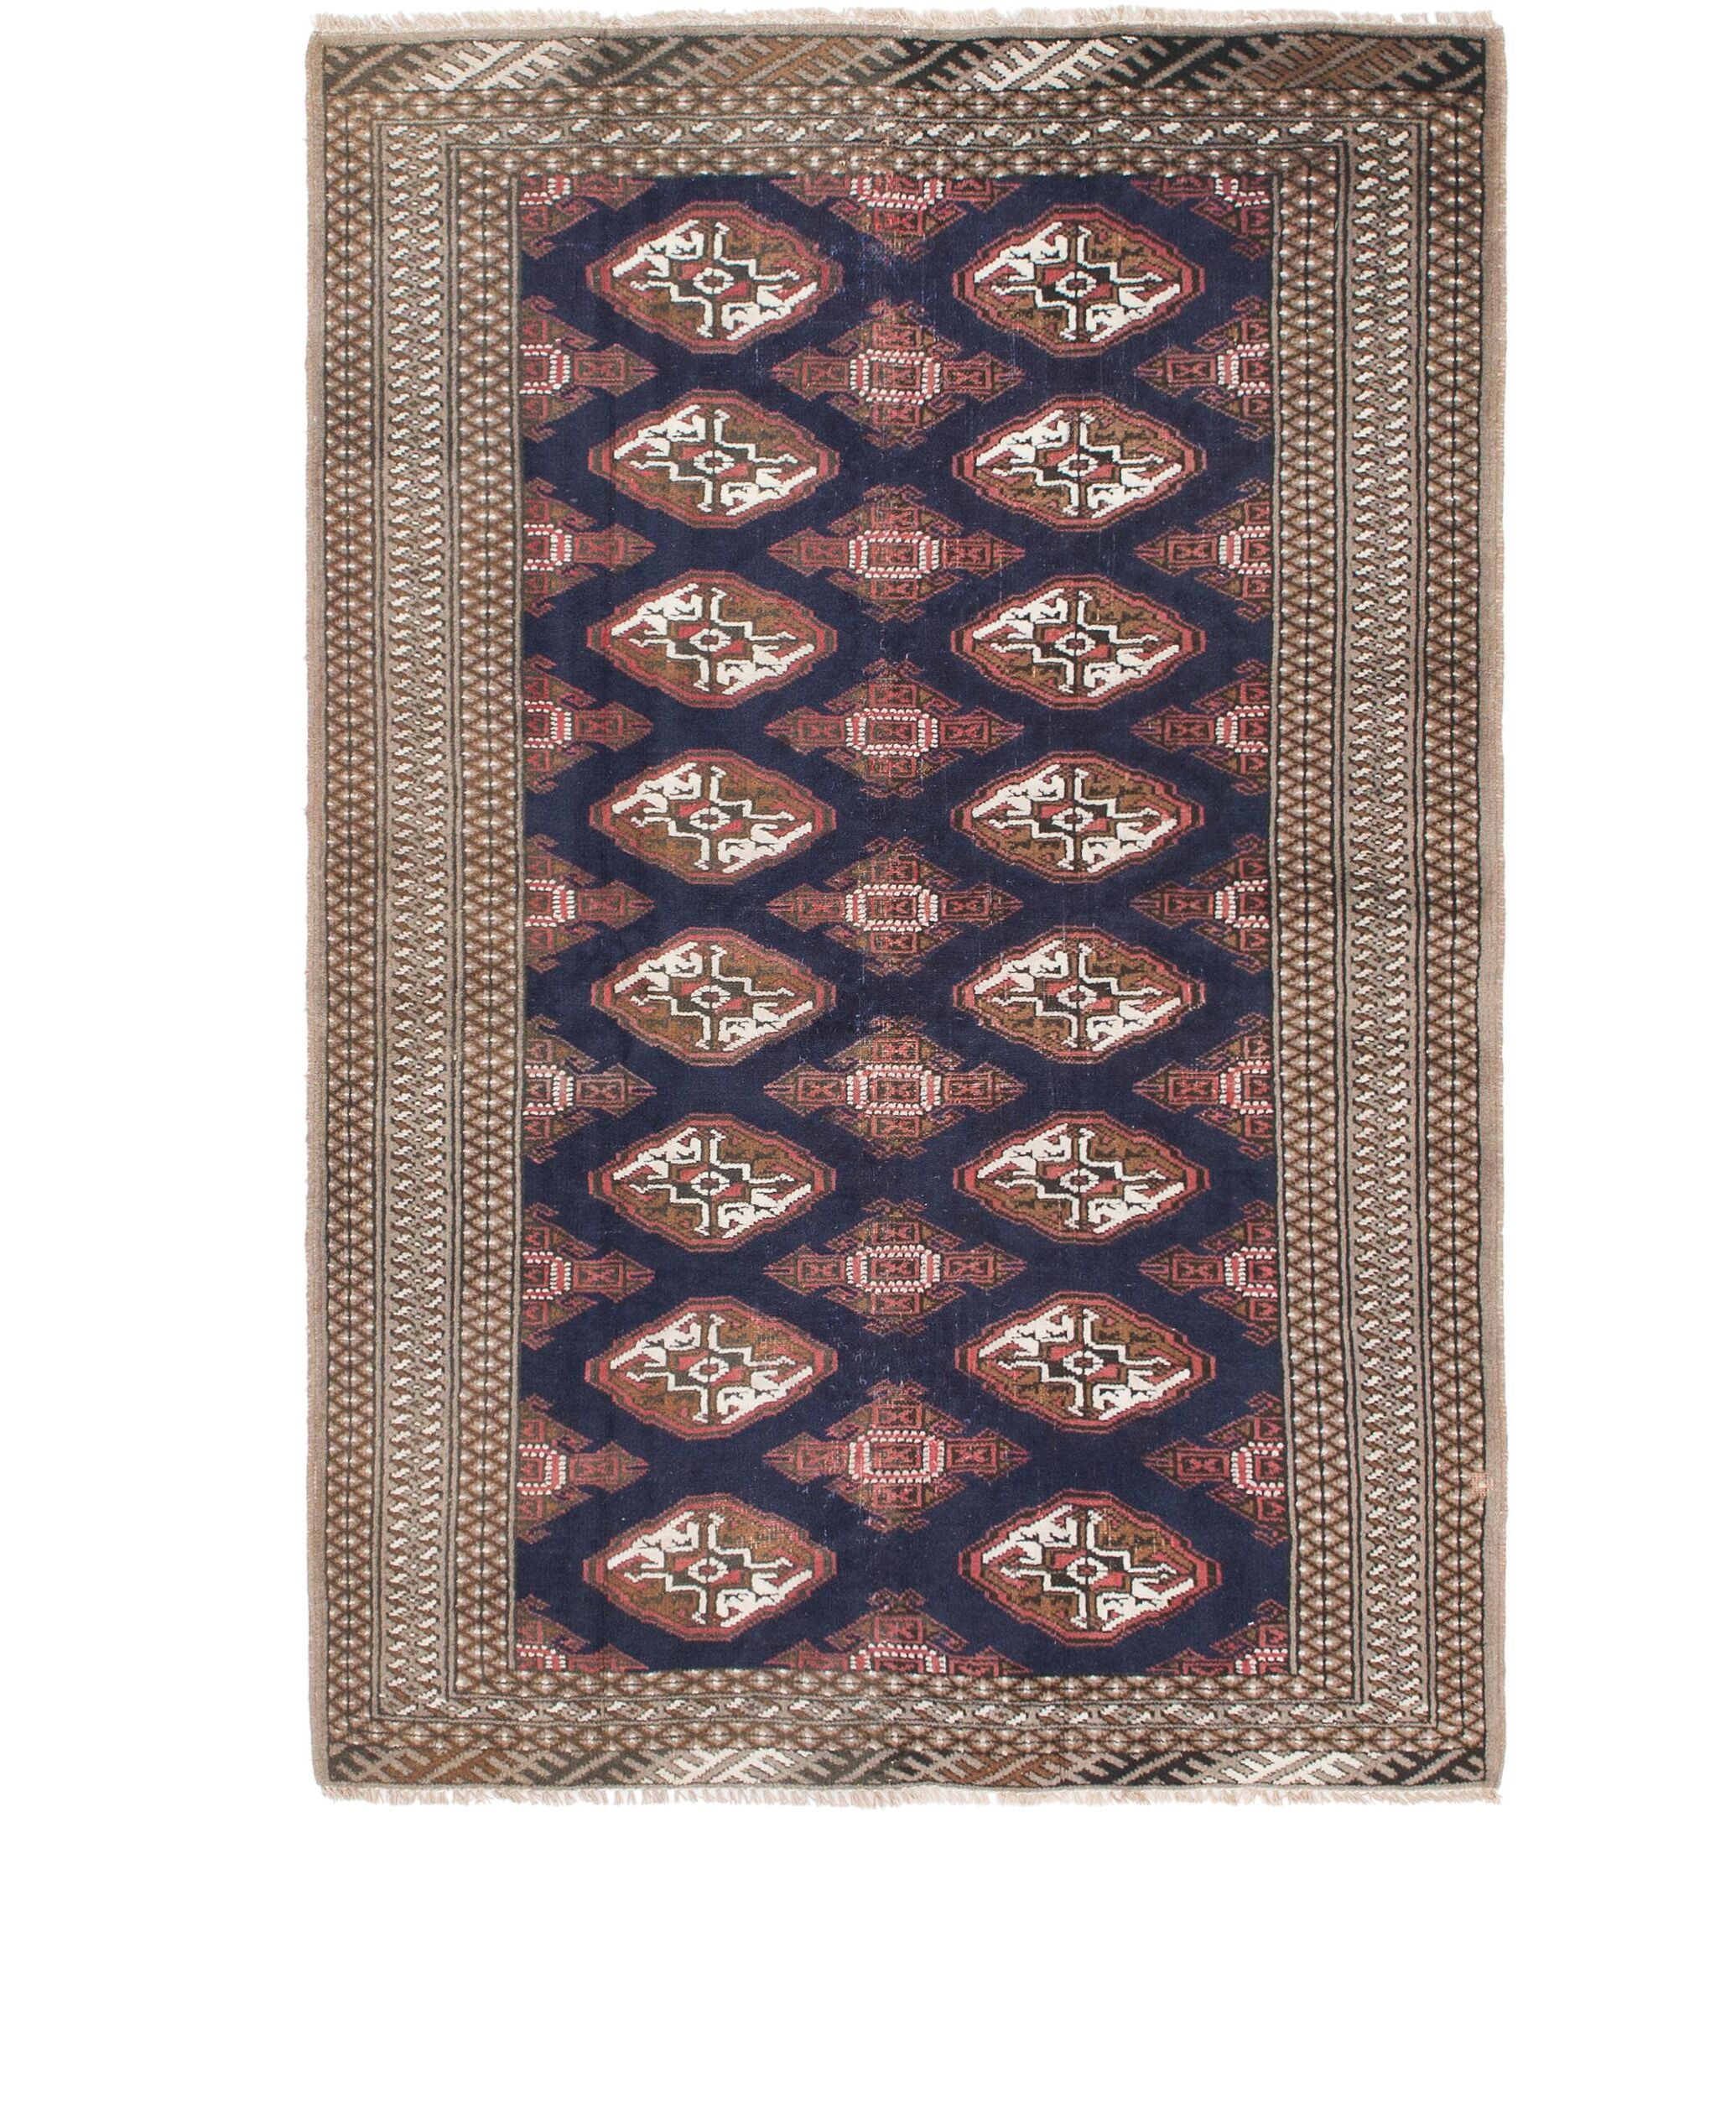 One-of-a-Kind Tekke Hand-Knotted Wool Gray/Navy Blue Area Rug